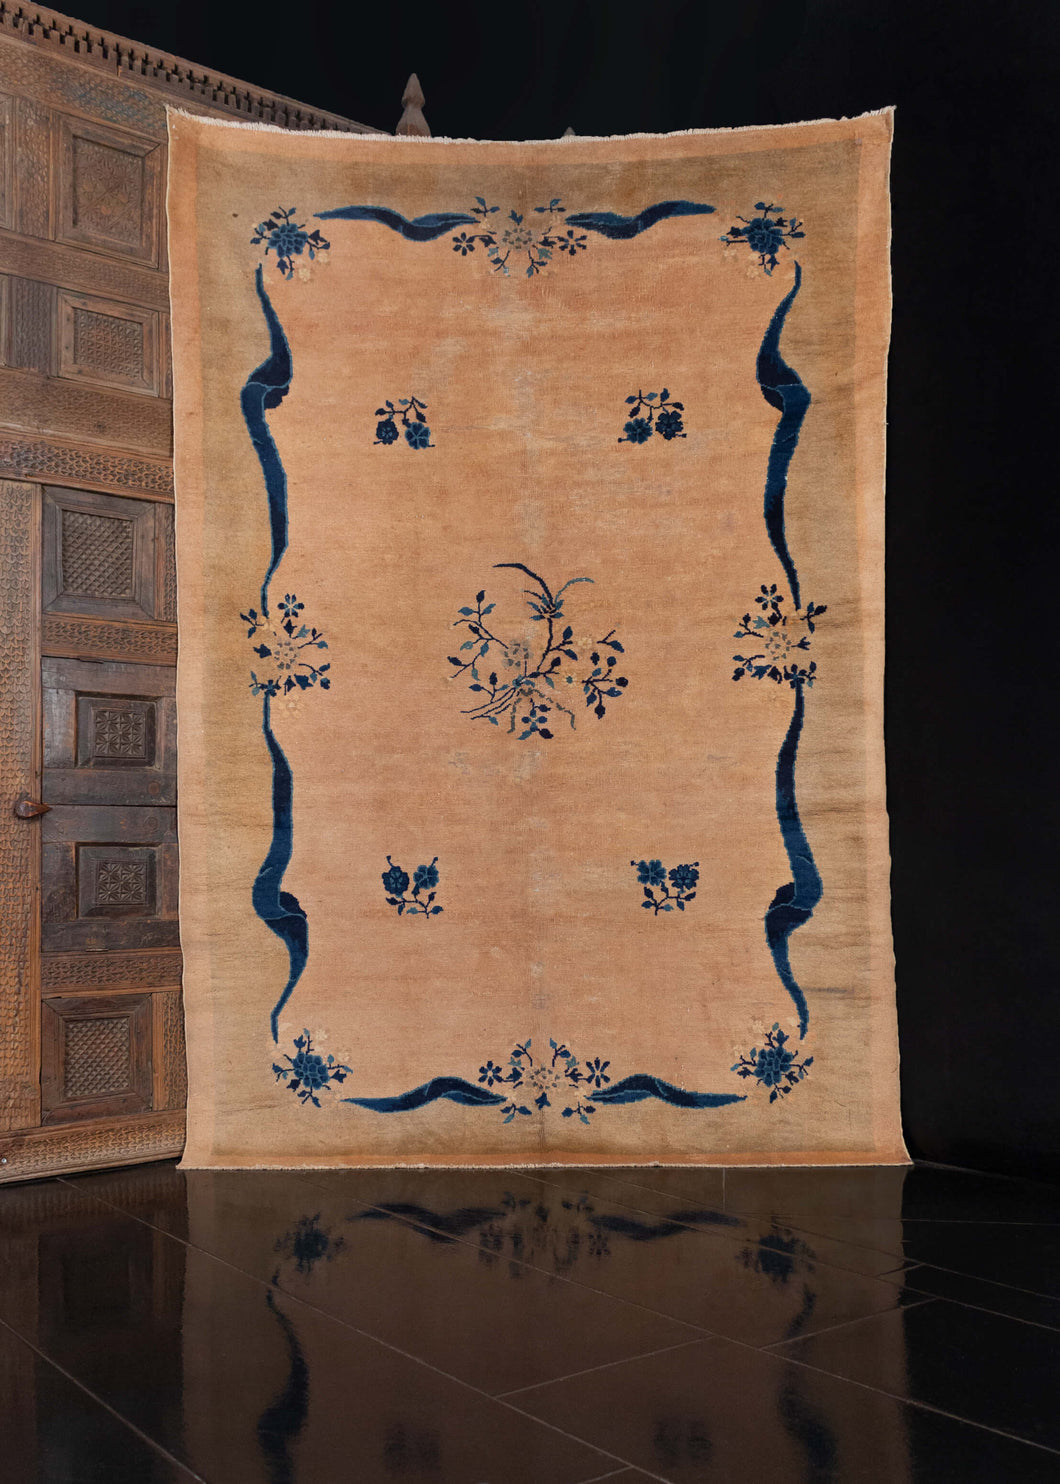 Chinese Deco rug, handwoven during the second quarter of the 20th century.   This elegant rug features a minimalist design composed of a dainty blossoms and ribbons woven in shades of indigo blue on a soft beige field. A very subtle green-beige border frames the rug and adds to the limited color palette.    In good condition, signs of wear consistent with age. Low pile, with a soft handle.